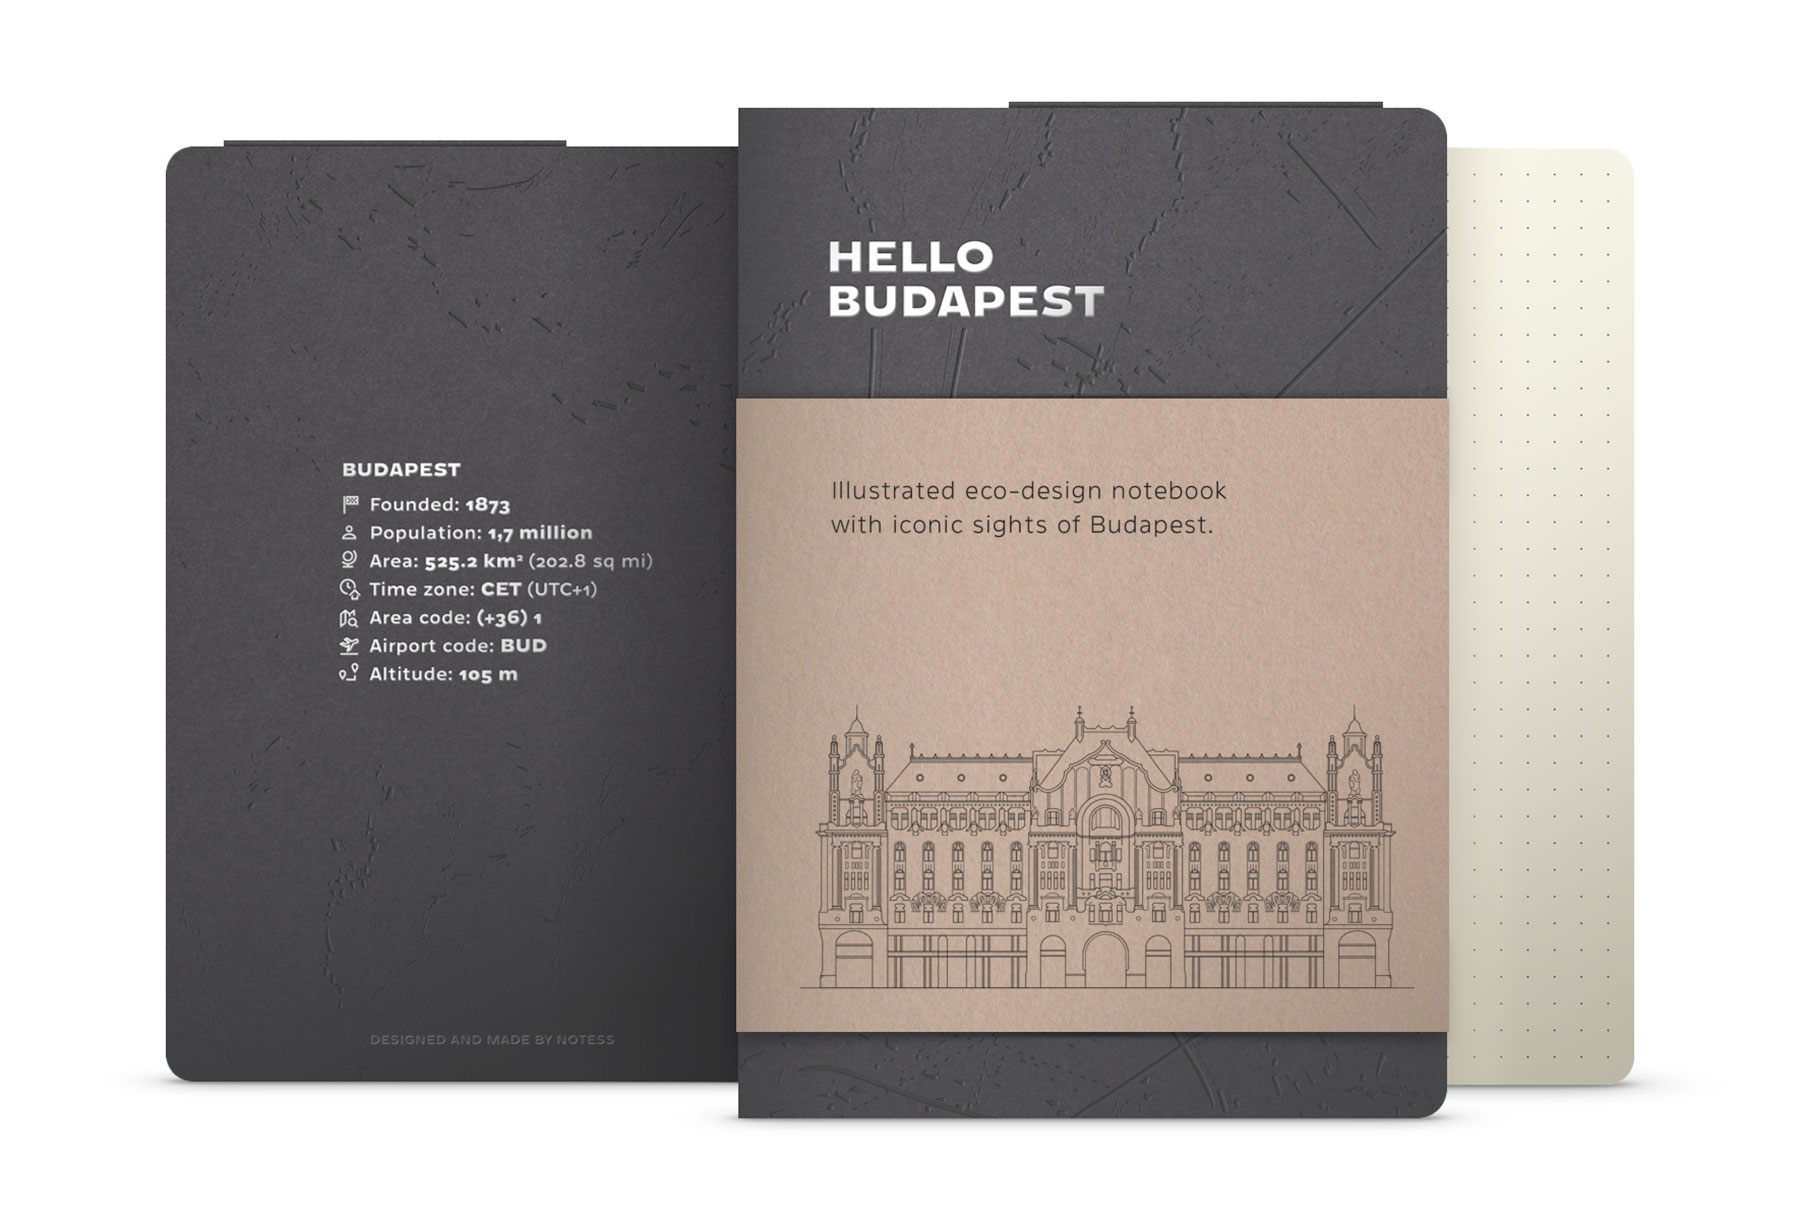 Hello-Budapest-Notebook-Basalt-Grey-Product-02.jpg